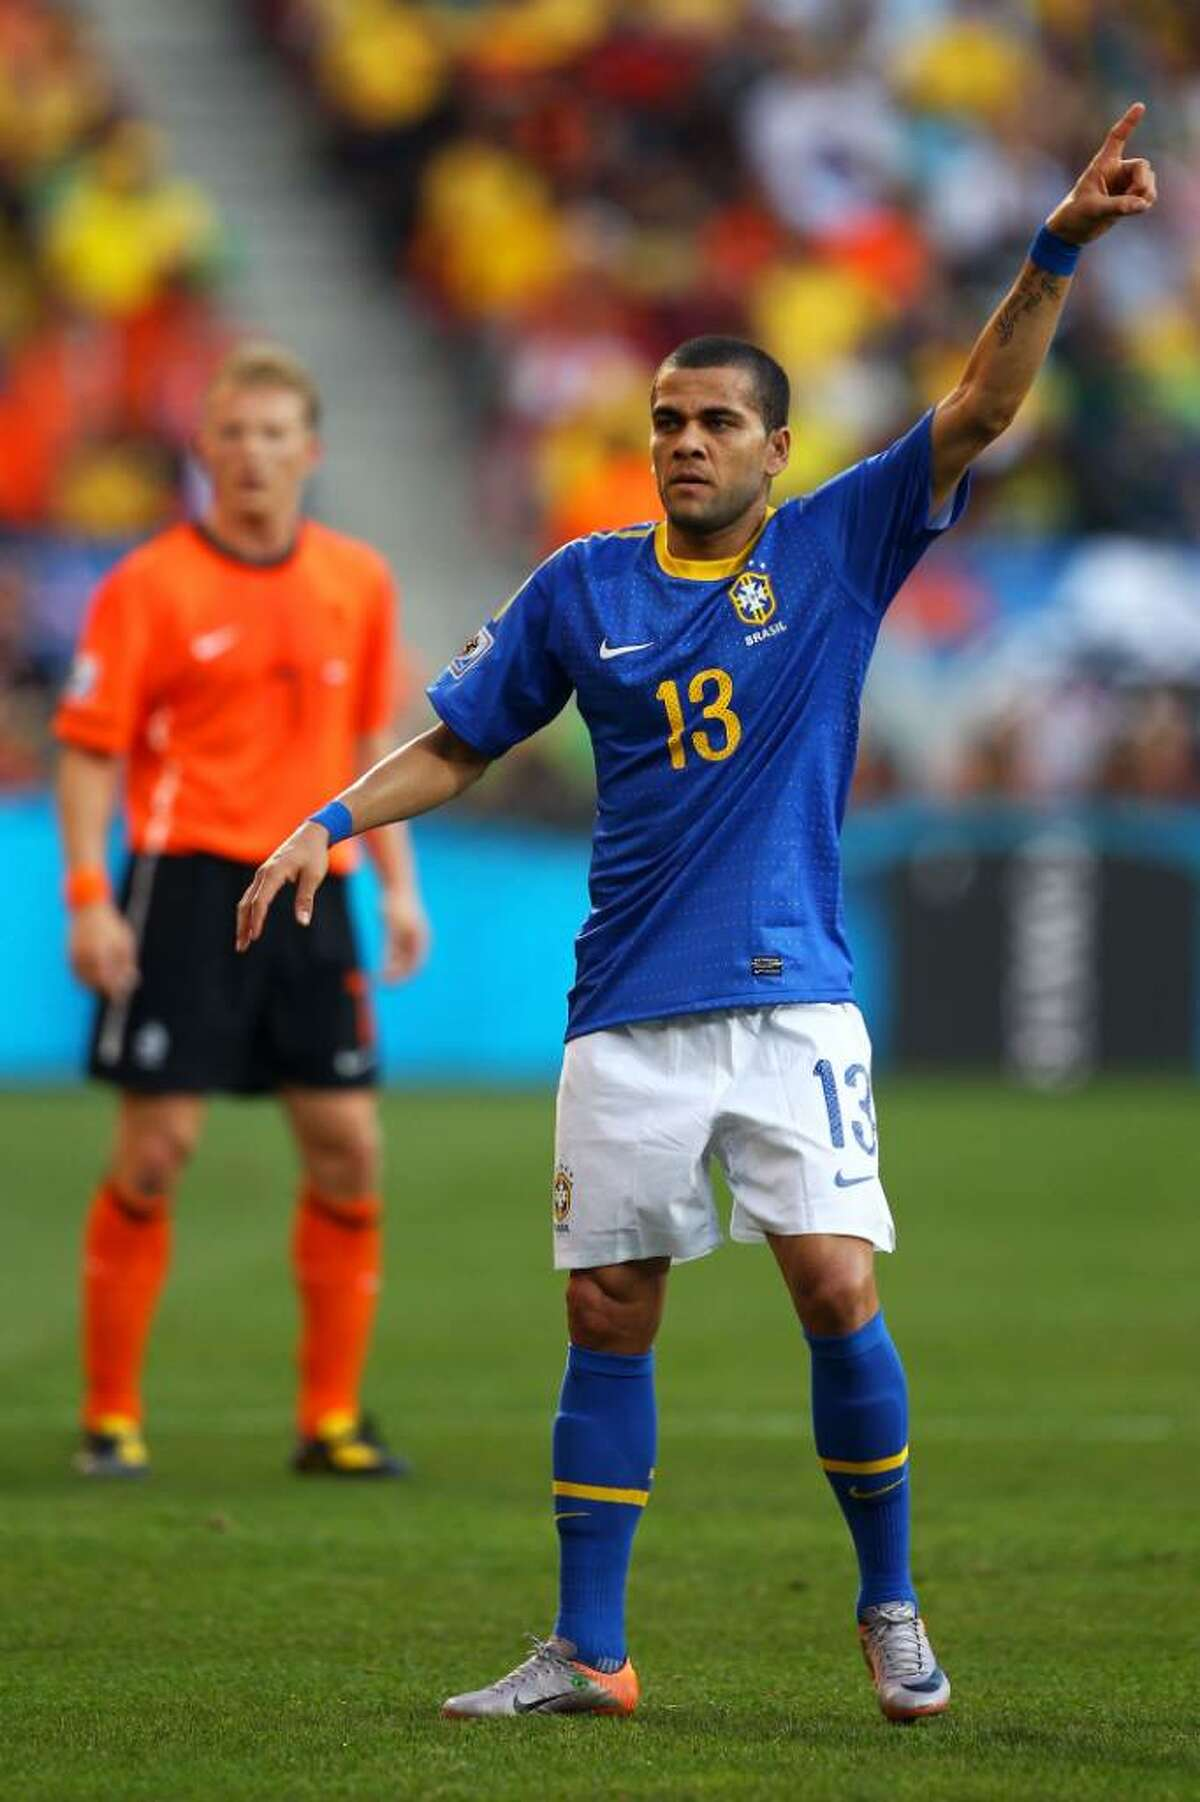 PORT ELIZABETH, SOUTH AFRICA - JULY 02: Dani Alves of Brazil gestures during the 2010 FIFA World Cup South Africa Quarter Final match between Netherlands and Brazil at Nelson Mandela Bay Stadium on July 2, 2010 in Nelson Mandela Bay/Port Elizabeth, South Africa. (Photo by Richard Heathcote/Getty Images) *** Local Caption *** Dani Alves